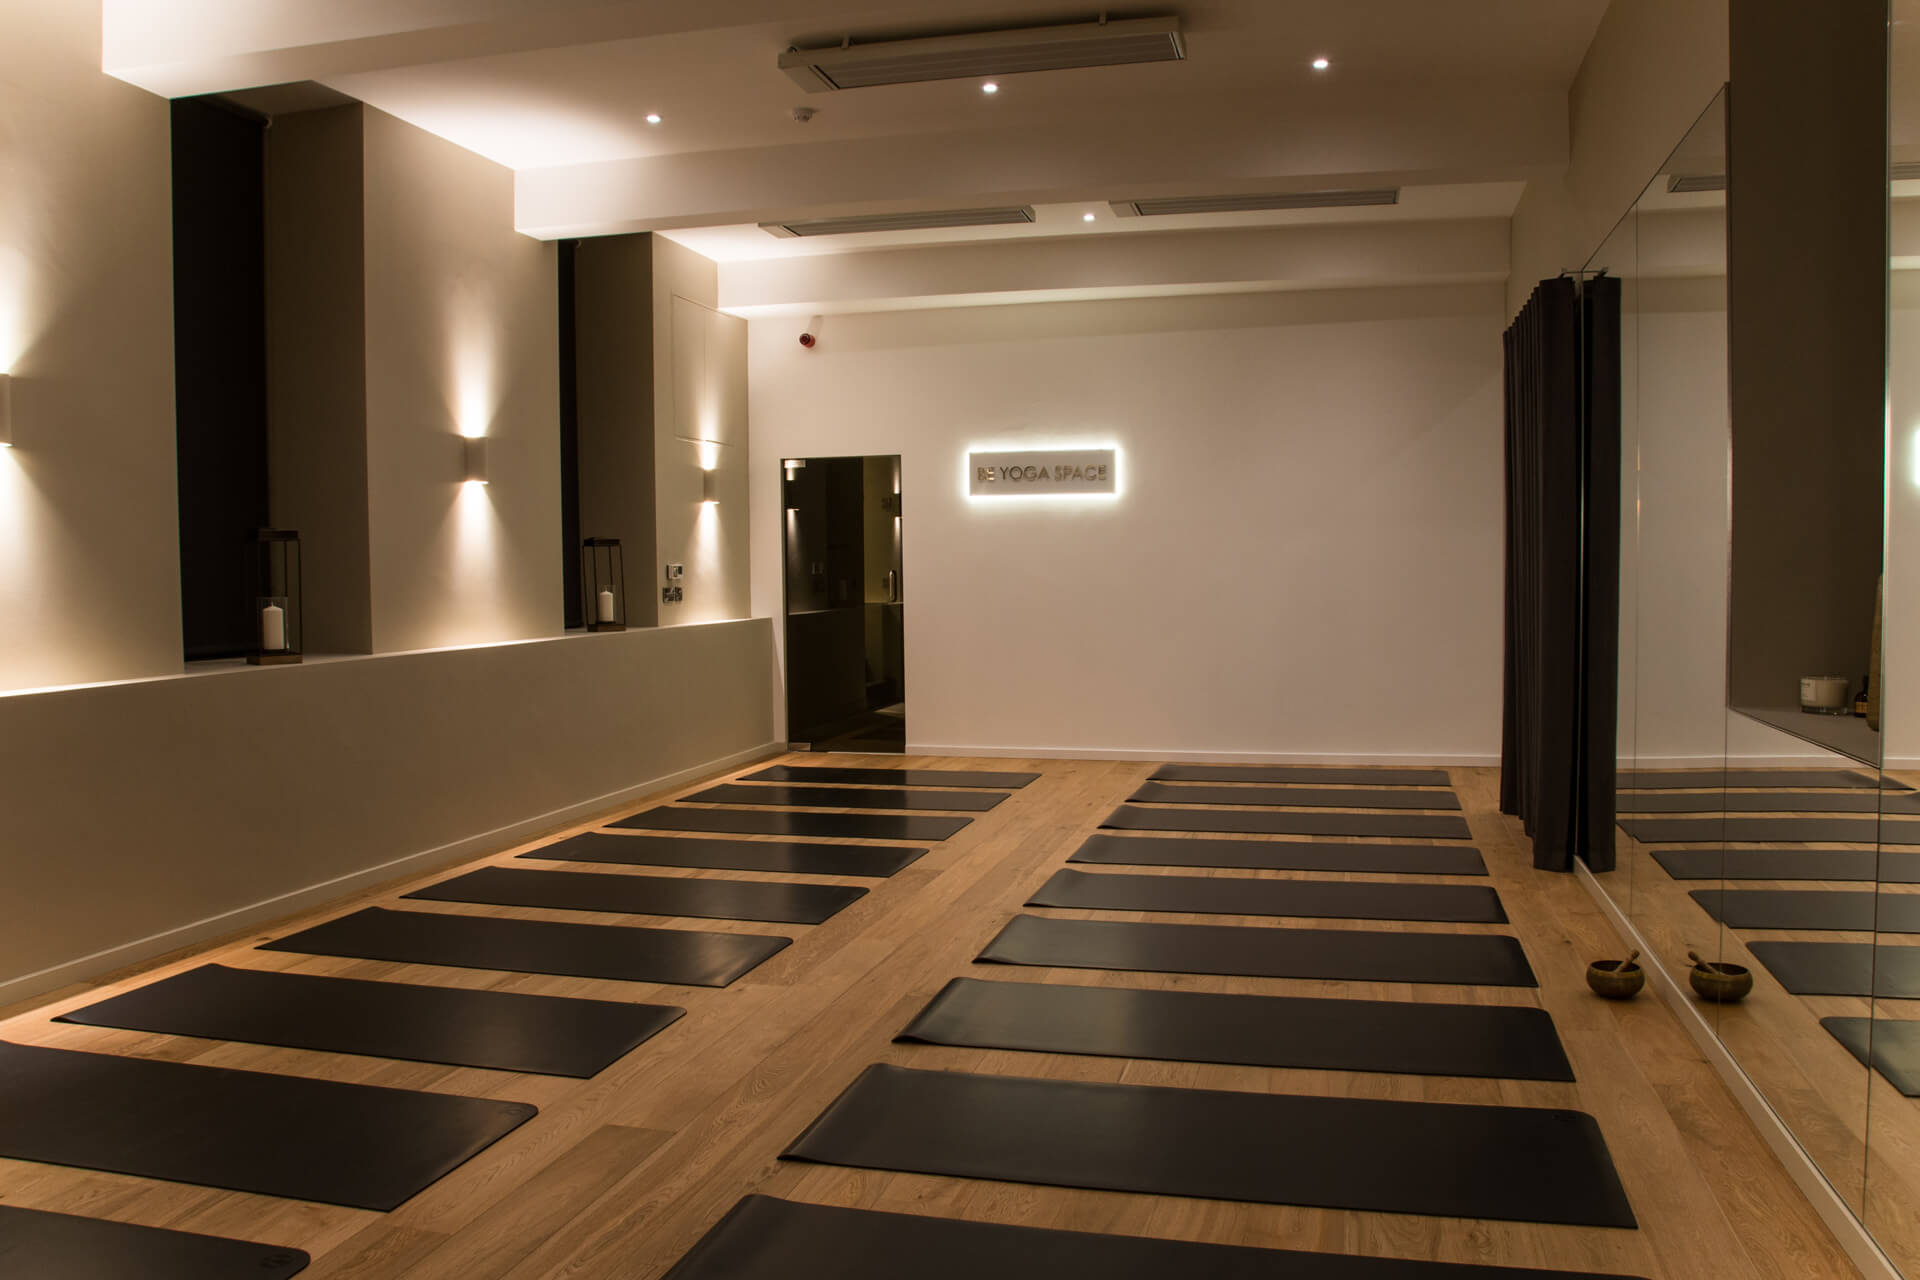 Be Yoga Space full hot yoga studio view dimmed lights